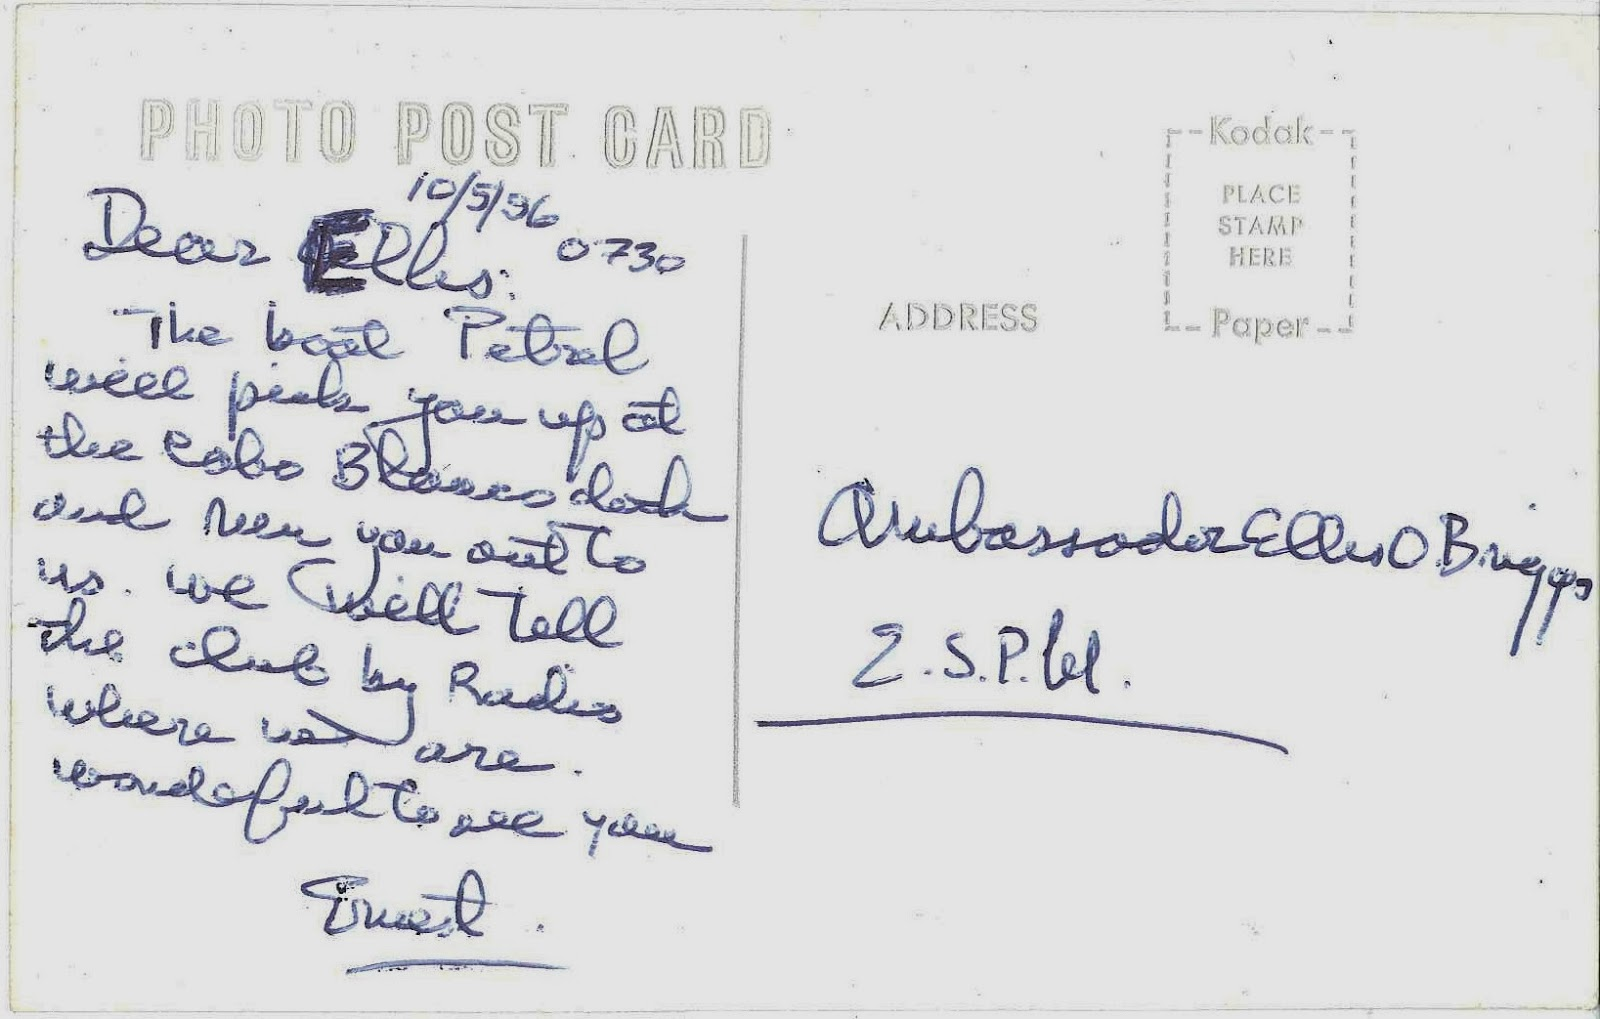 A postcard signed by Ernest Hemingway.